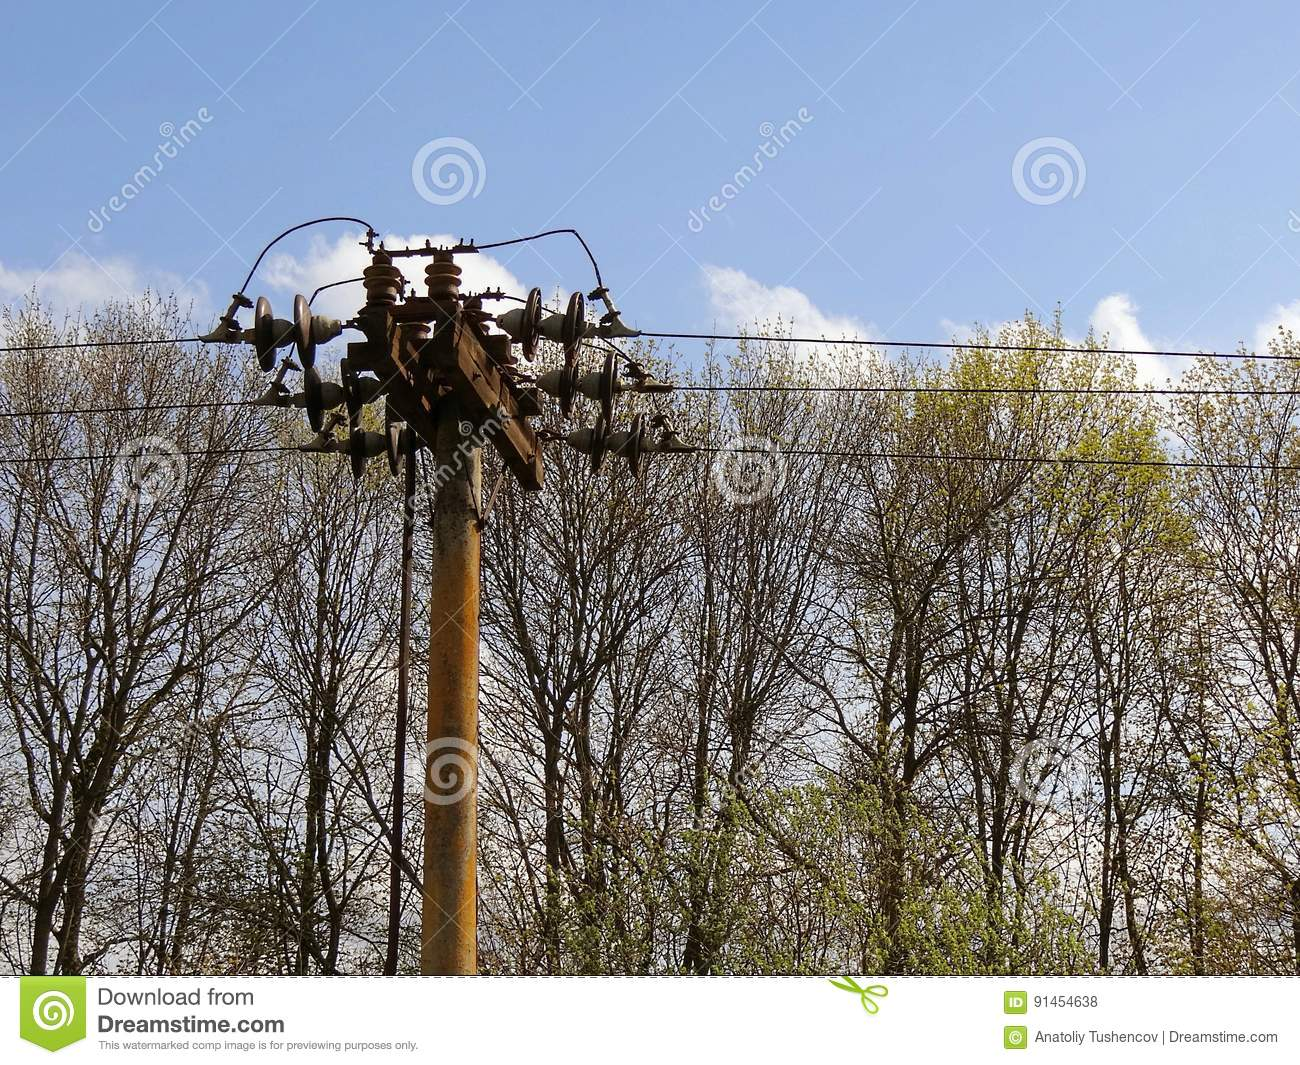 Man On High Voltage Wire : The pole with high voltage wires against sky and trees